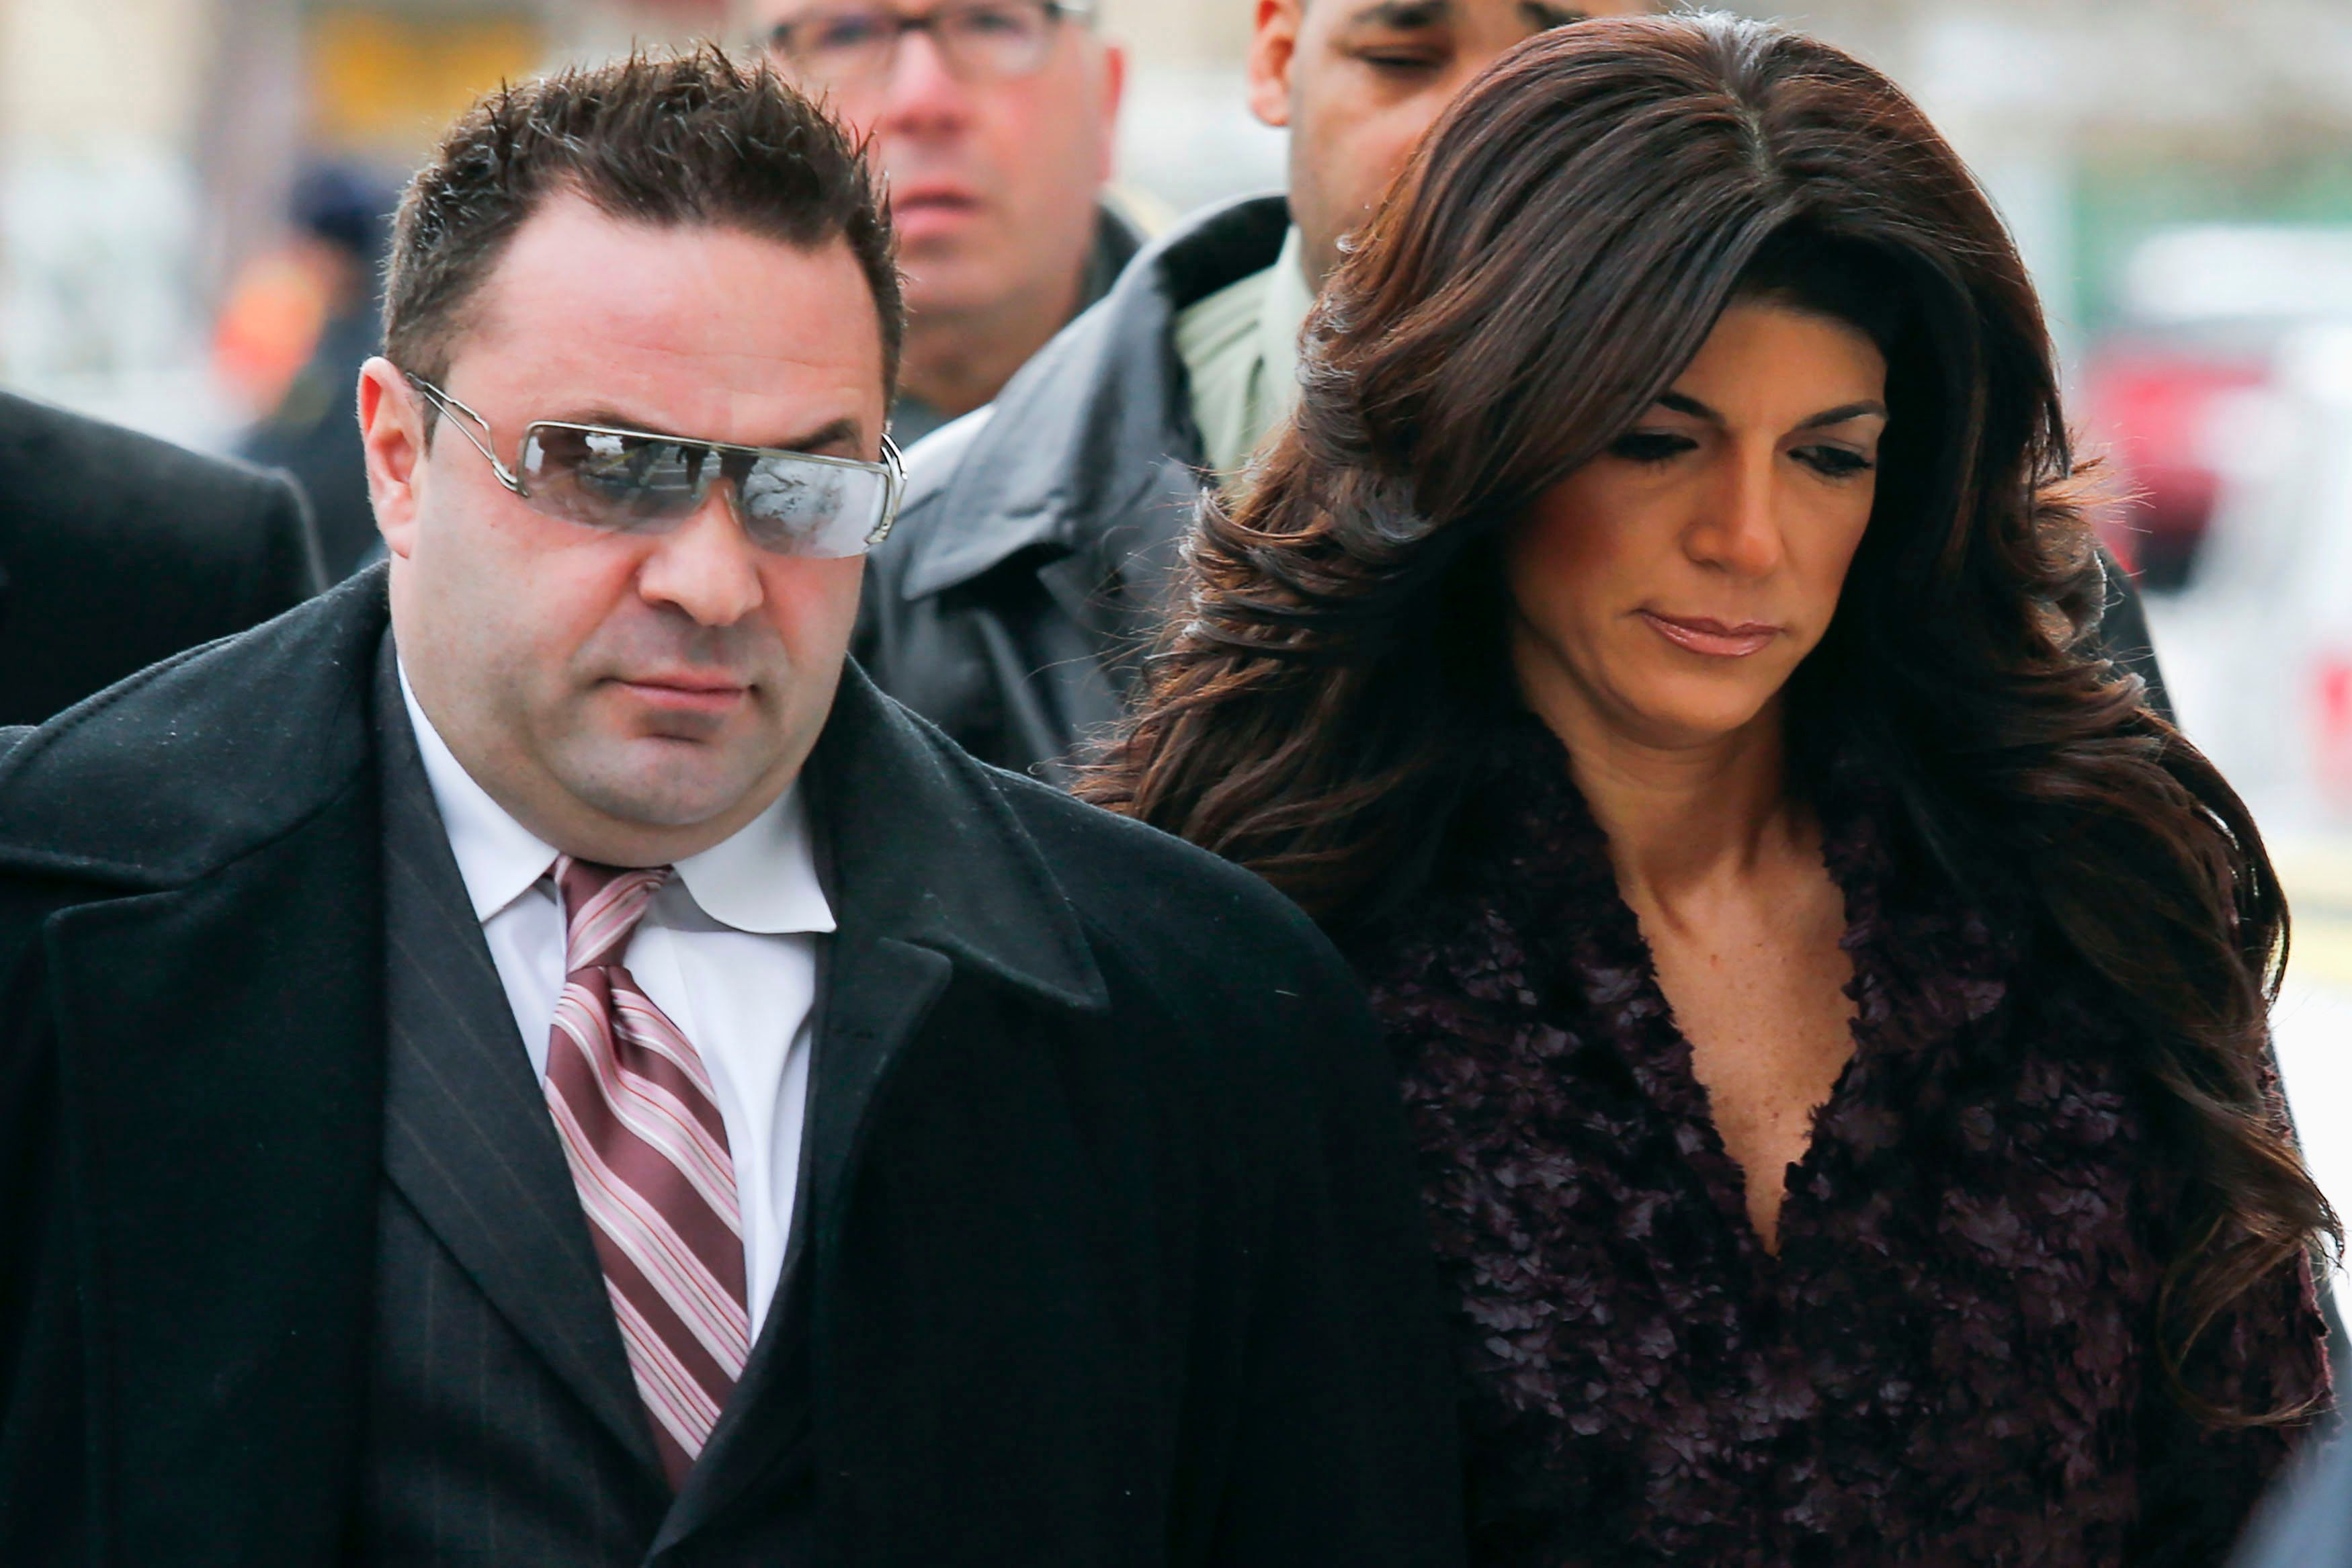 Teresa Giudice Doesn't Care Joe's Getting Deported, Says 'RHONJ' Star Kim D